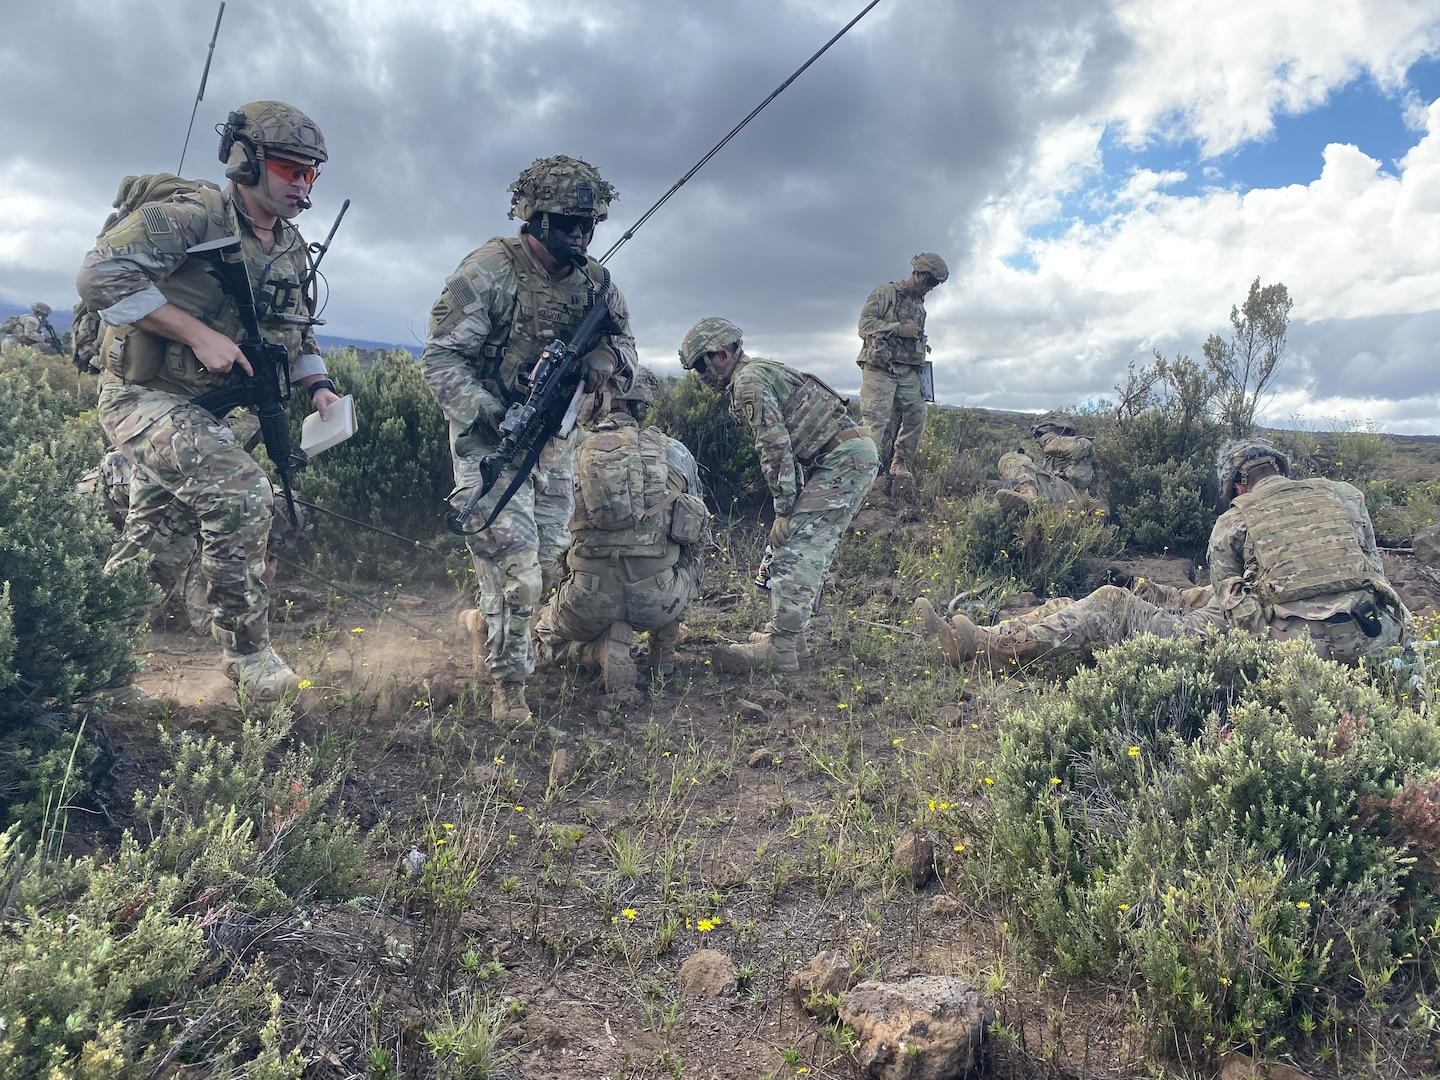 Staff Sgt. Ryan Dillman, 25th Air Support Operations Squadron Tactical Air Control Party, maneuvers toward the assaulting platoon with Alpha Company while coordinating a Medical Evacuation nine-line for a notional casualty while Observer Controllers/Trainers stand by during a Fire Support Coordination Exercise on Pohakuloa Training Area, located on the big island of Hawaii, November 12 through 21, 2019. During the exercise, members of the 25th ASOS and U.S. Army Pacific 2nd Brigade, 25th Infantry Division, 2nd Brigade Combat Team, integrated with B-52 Stratofortress bombers for live-fire training missions in support of Indo-Pacific Command's Continuous Bomber Presence operations. (Courtesy photo)